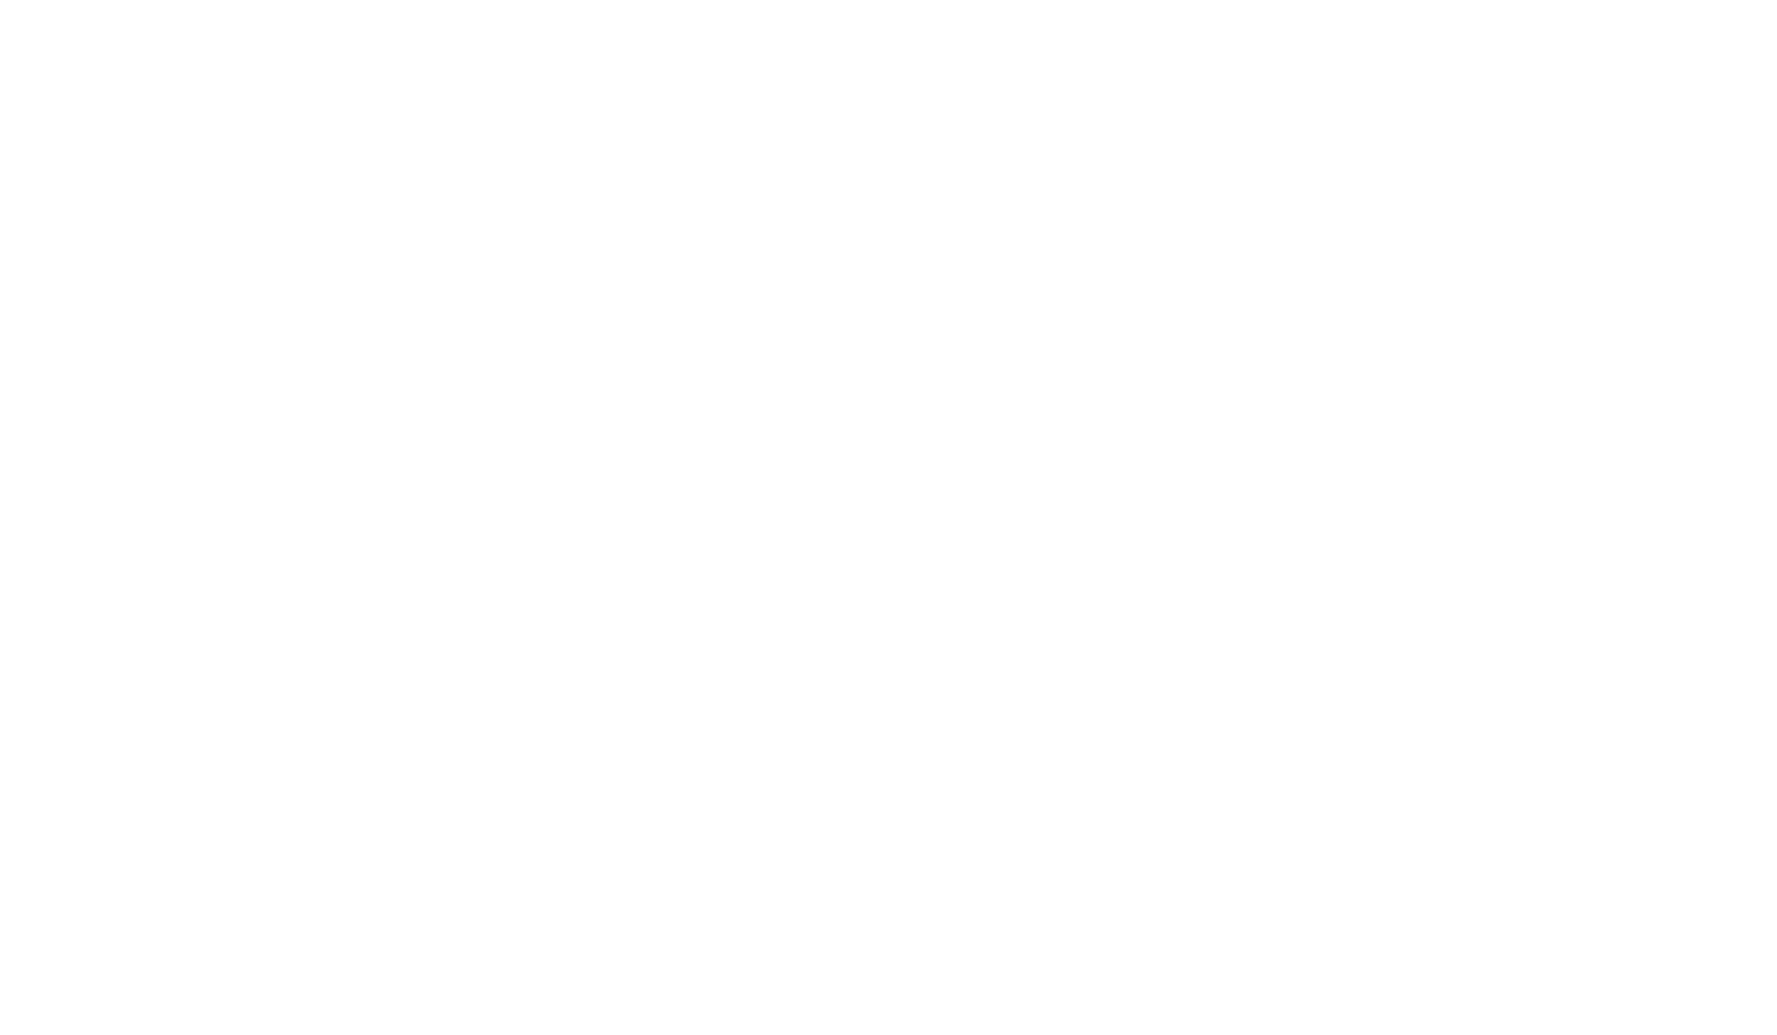 data magnifying glass